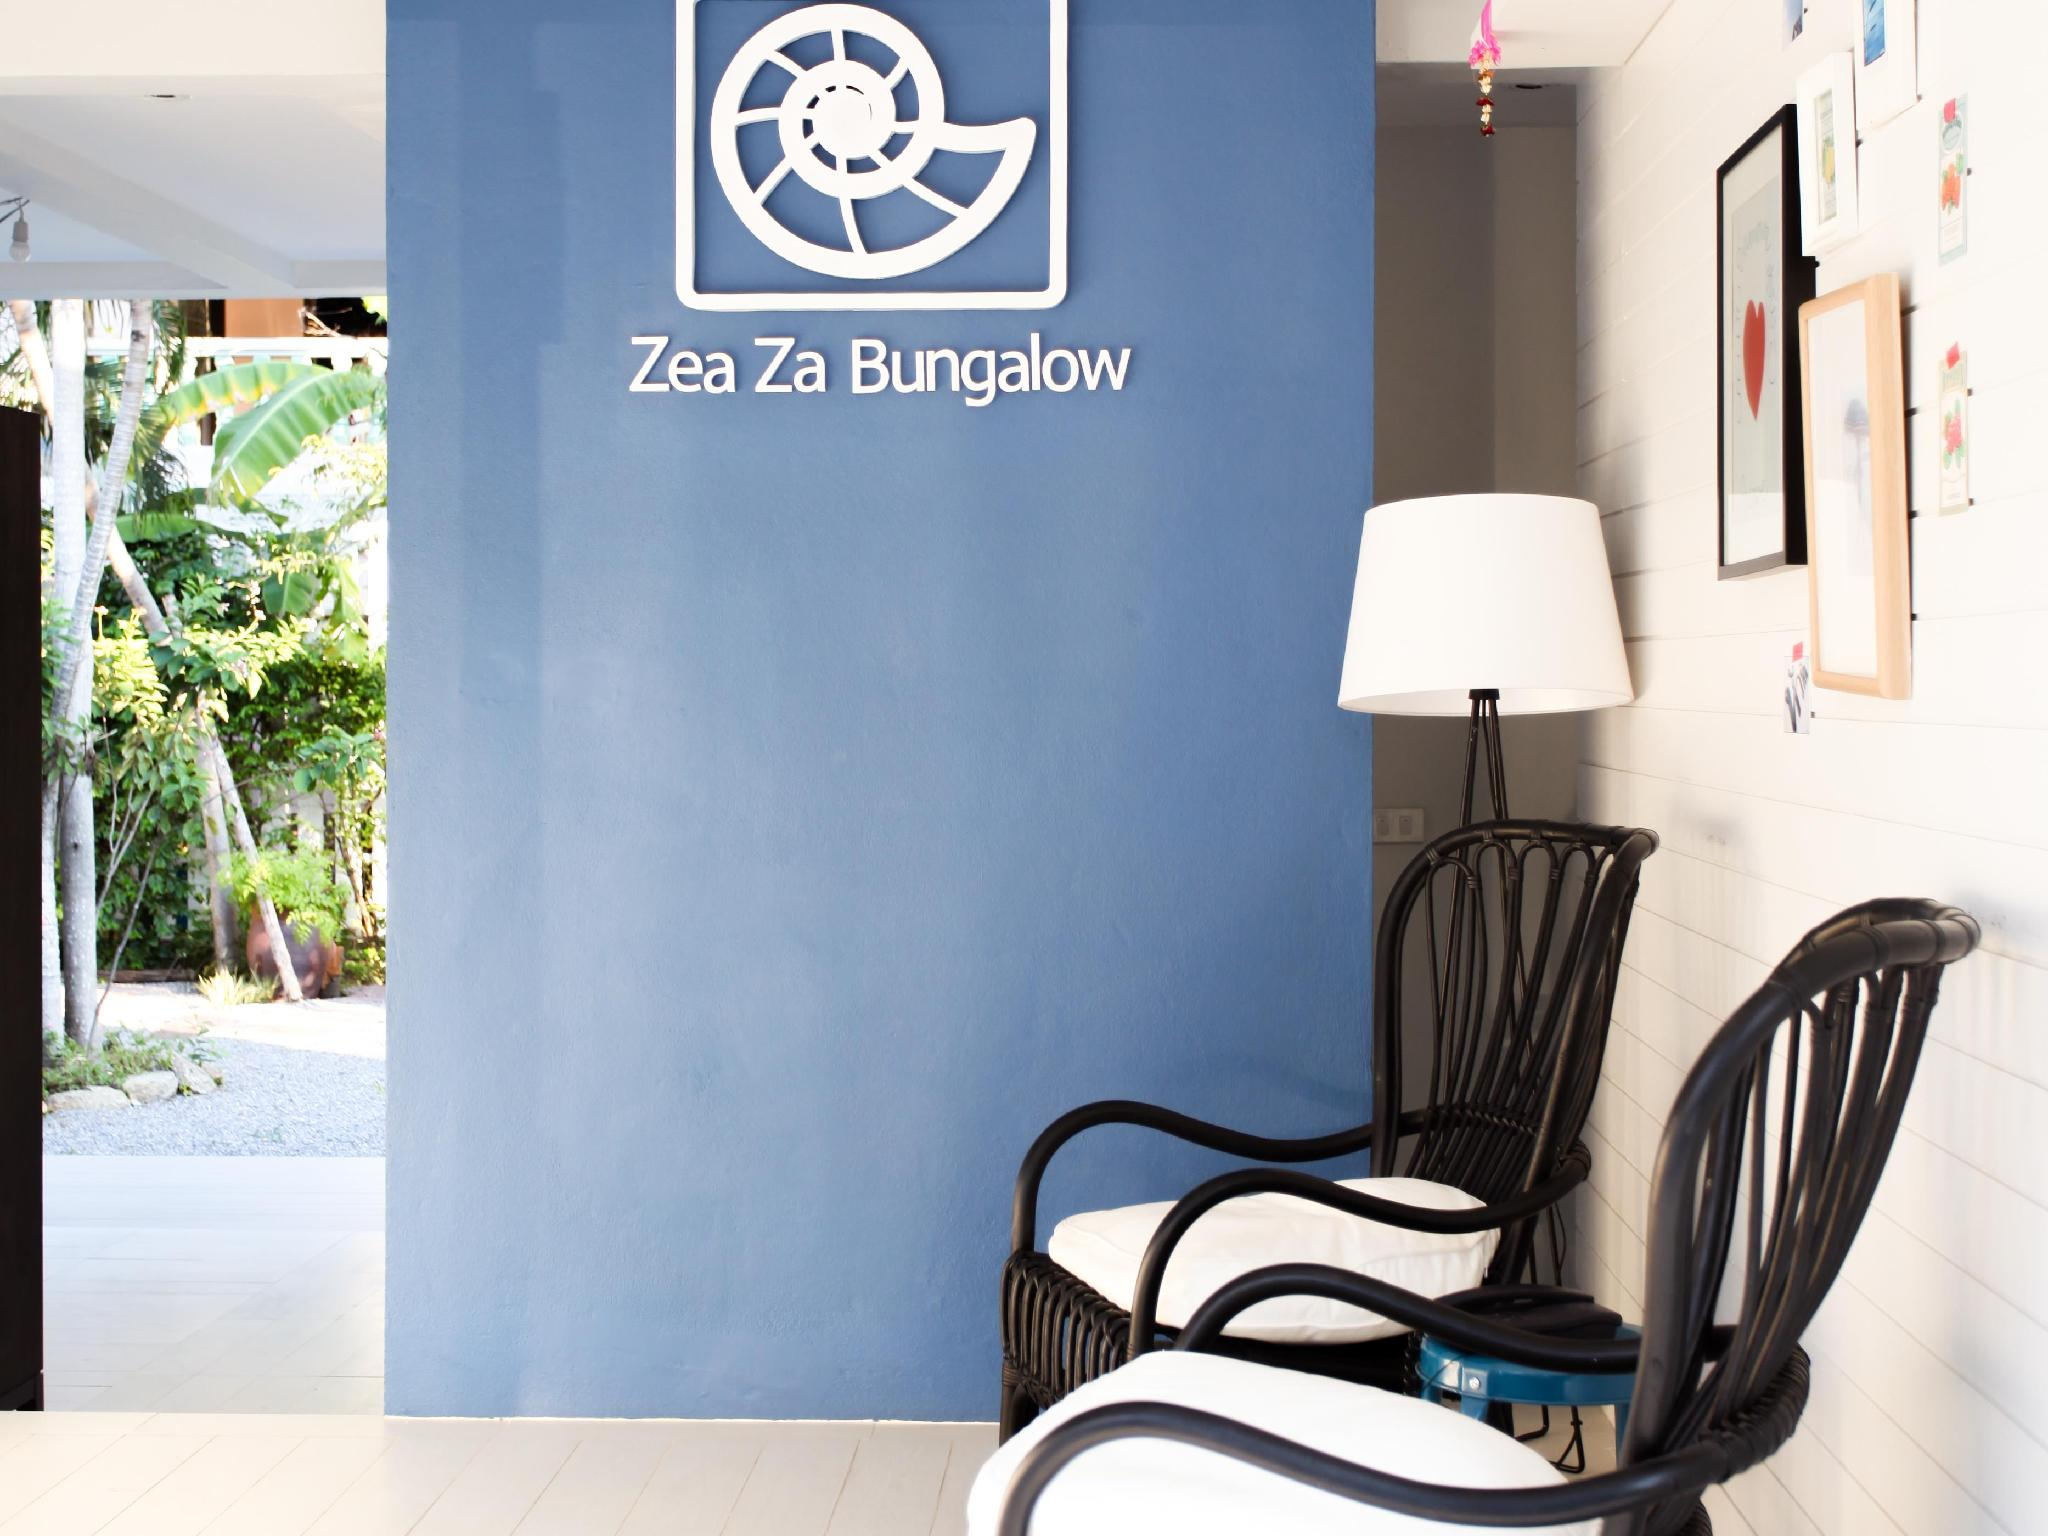 ZeaZa Bungalow - Hotell och Boende i Thailand i Asien